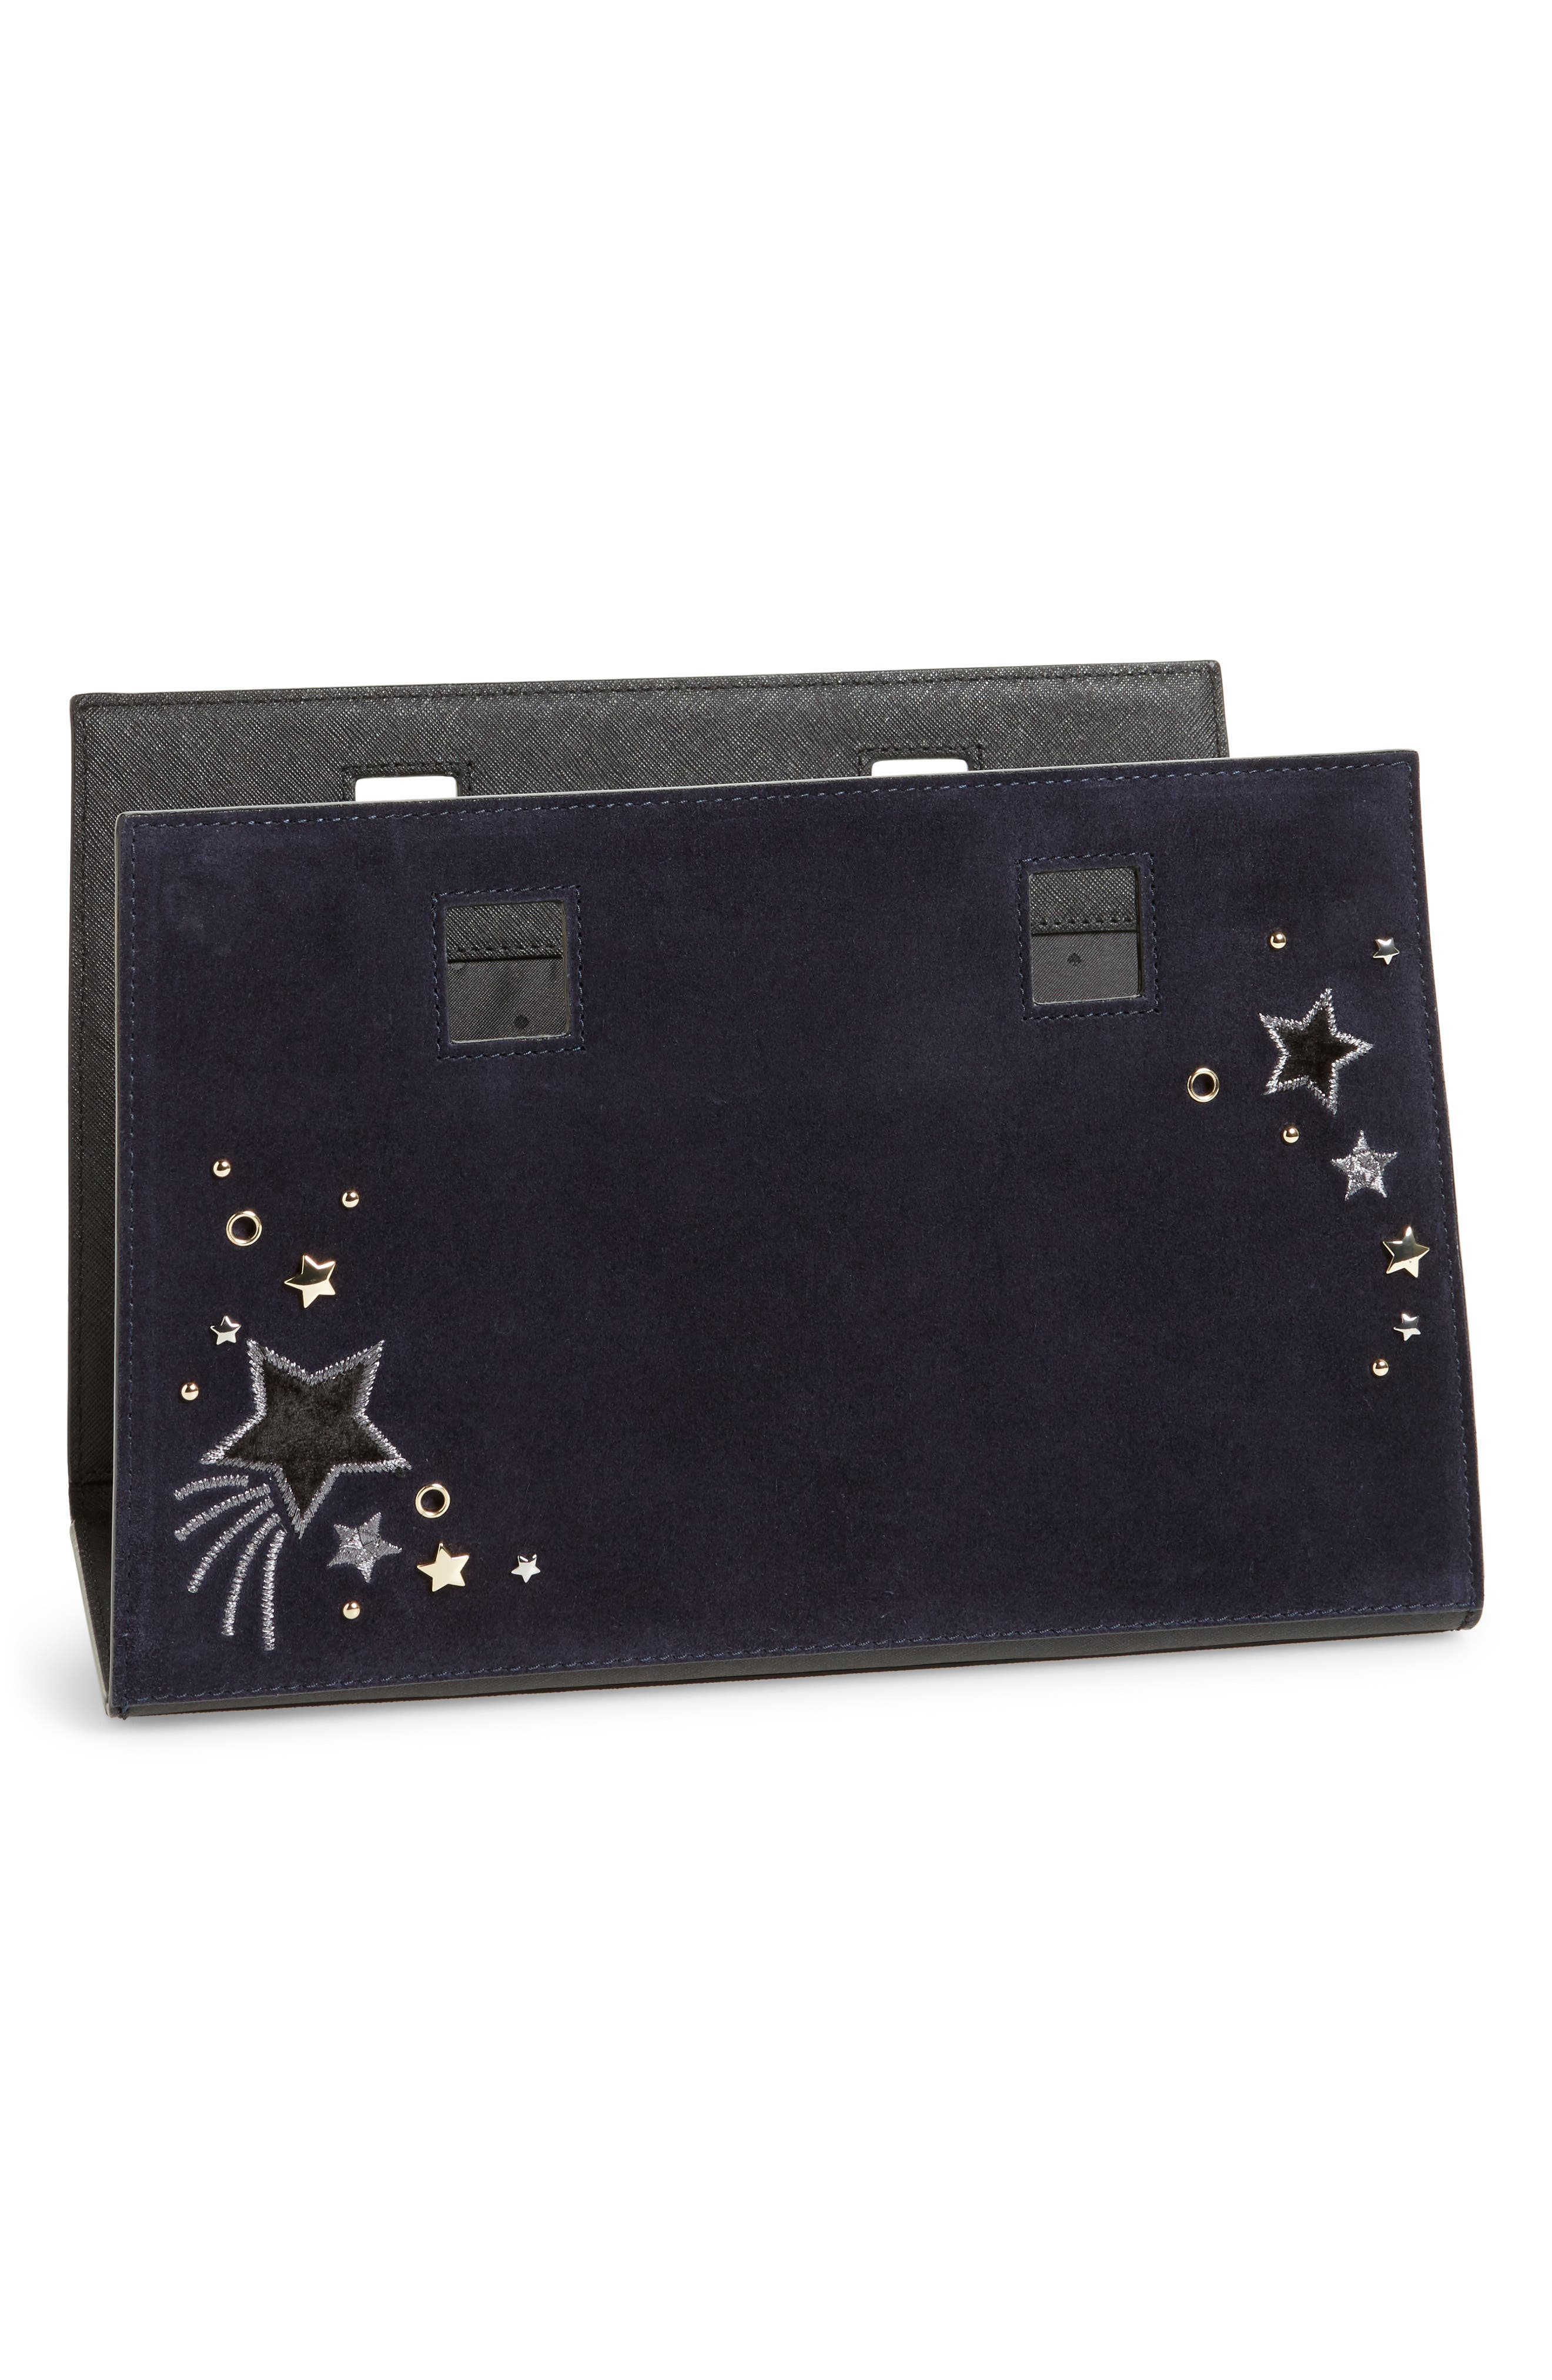 make it mine star embellished leather snap-on accent flap,                             Main thumbnail 1, color,                             Multi